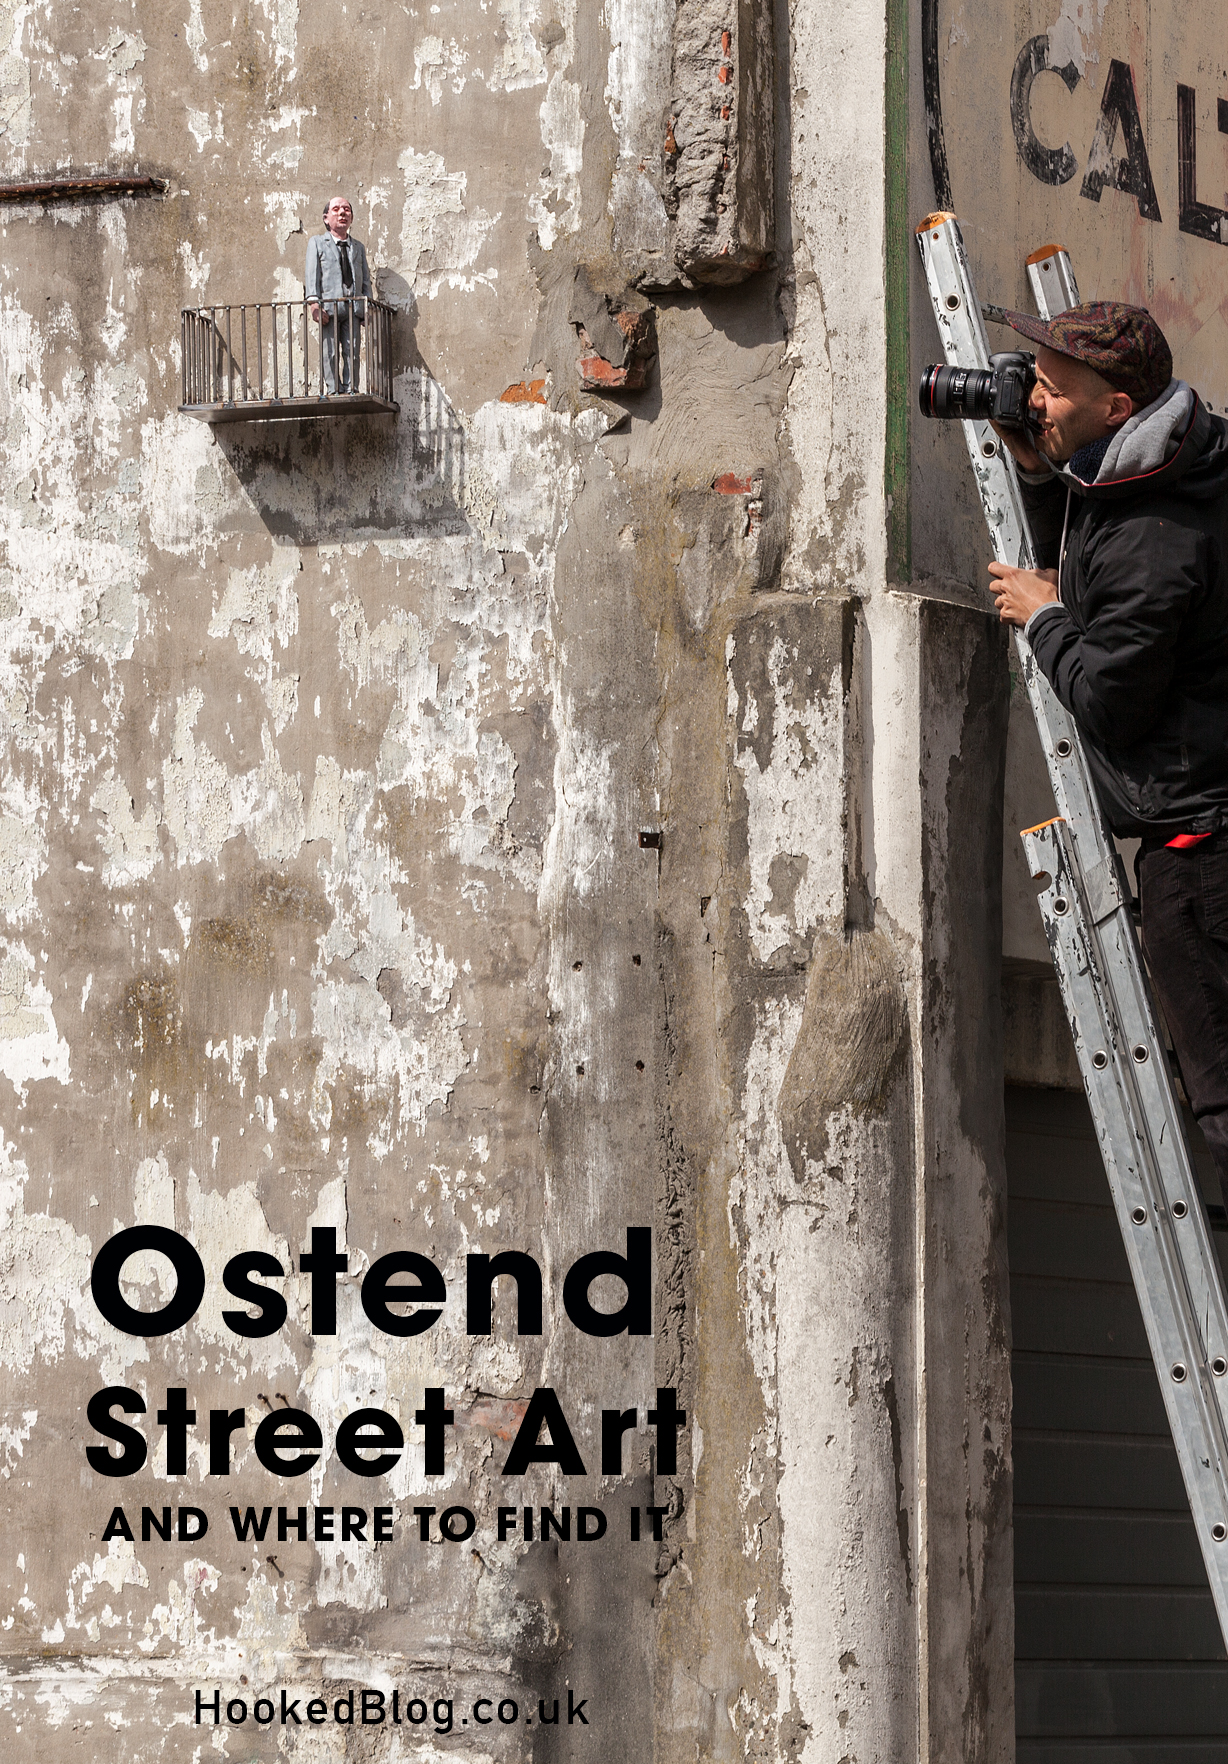 Ostend Street Art And Where To Find It. Travel Guide. #streetart #Murals #Travelguide